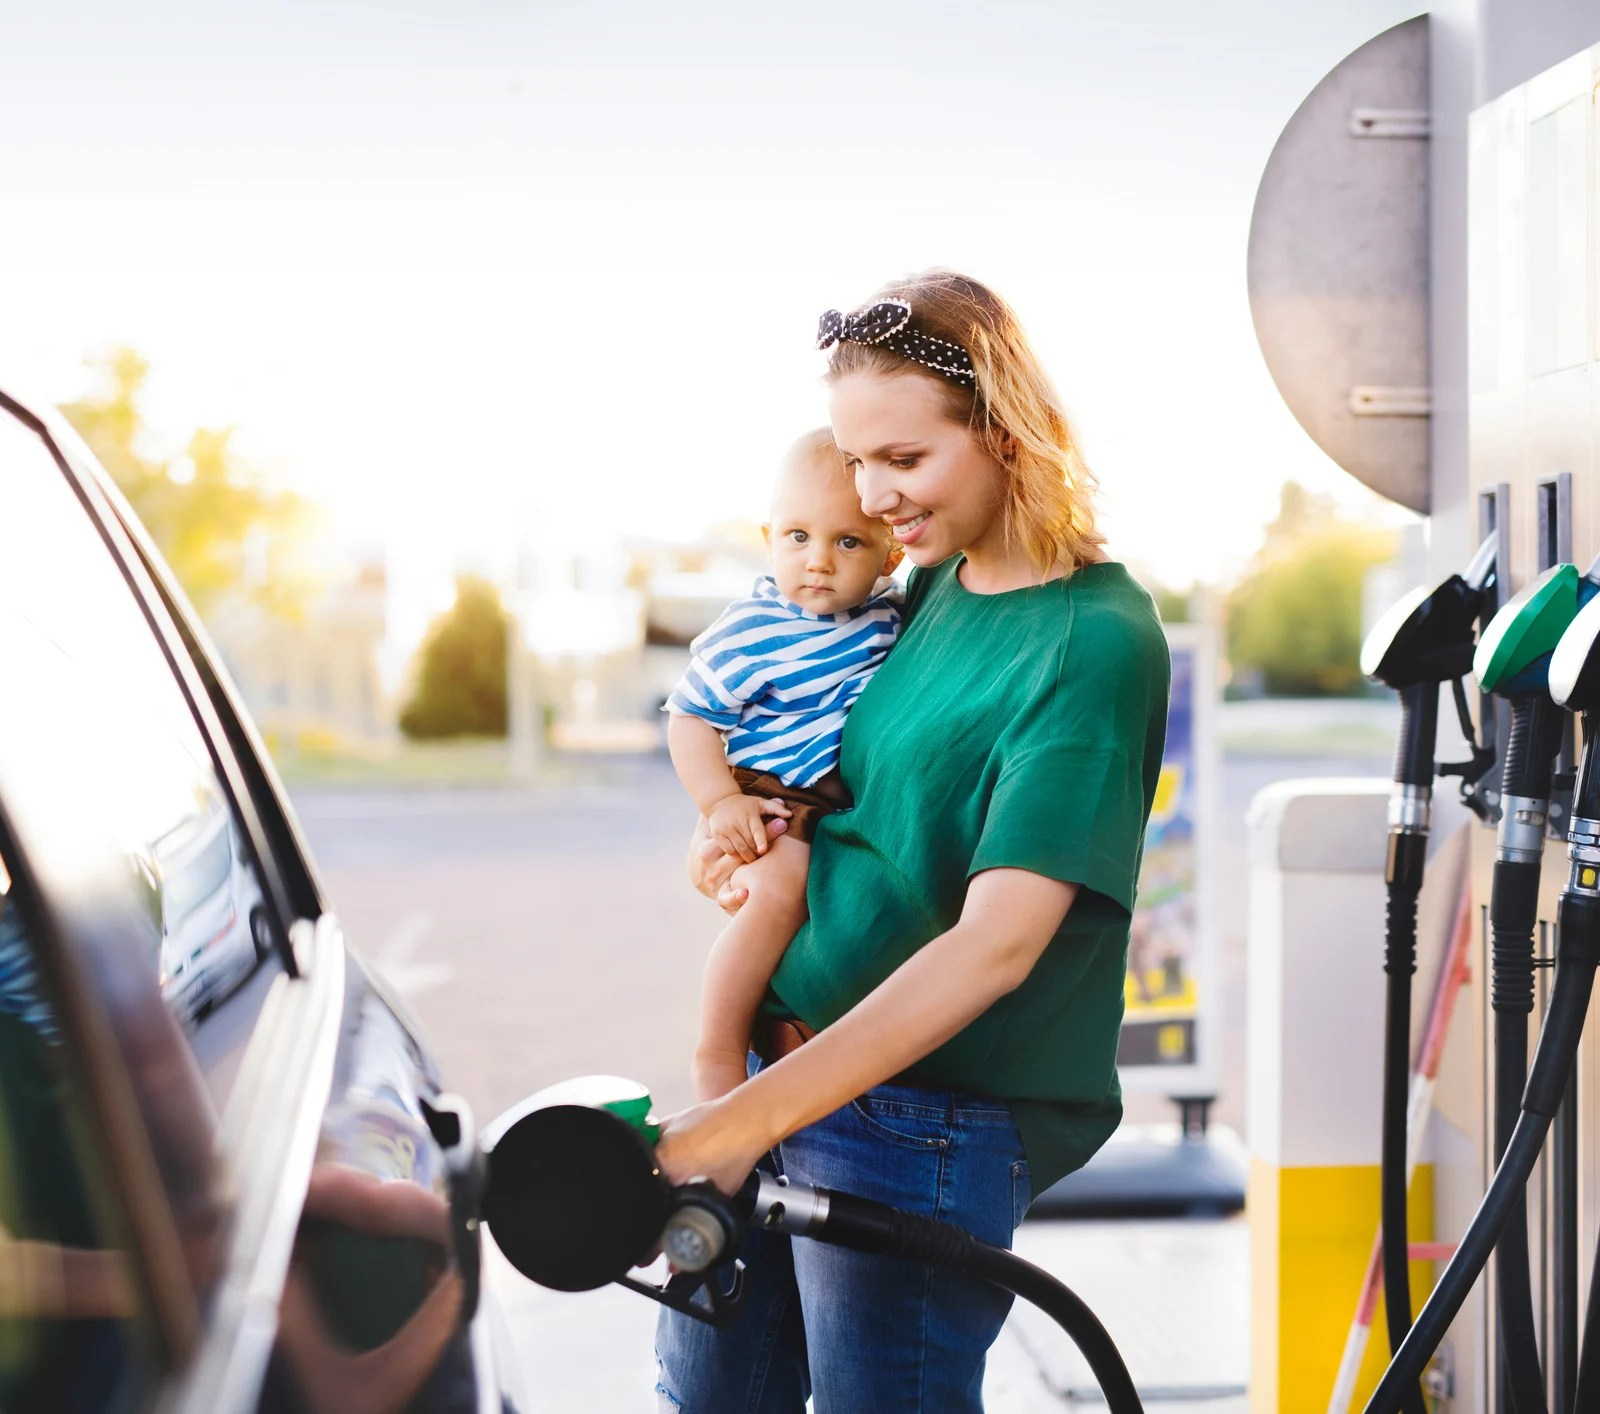 Gas Road Trip Americans Gear Up For Extra Summer Road Trip If Gas Prices Remain